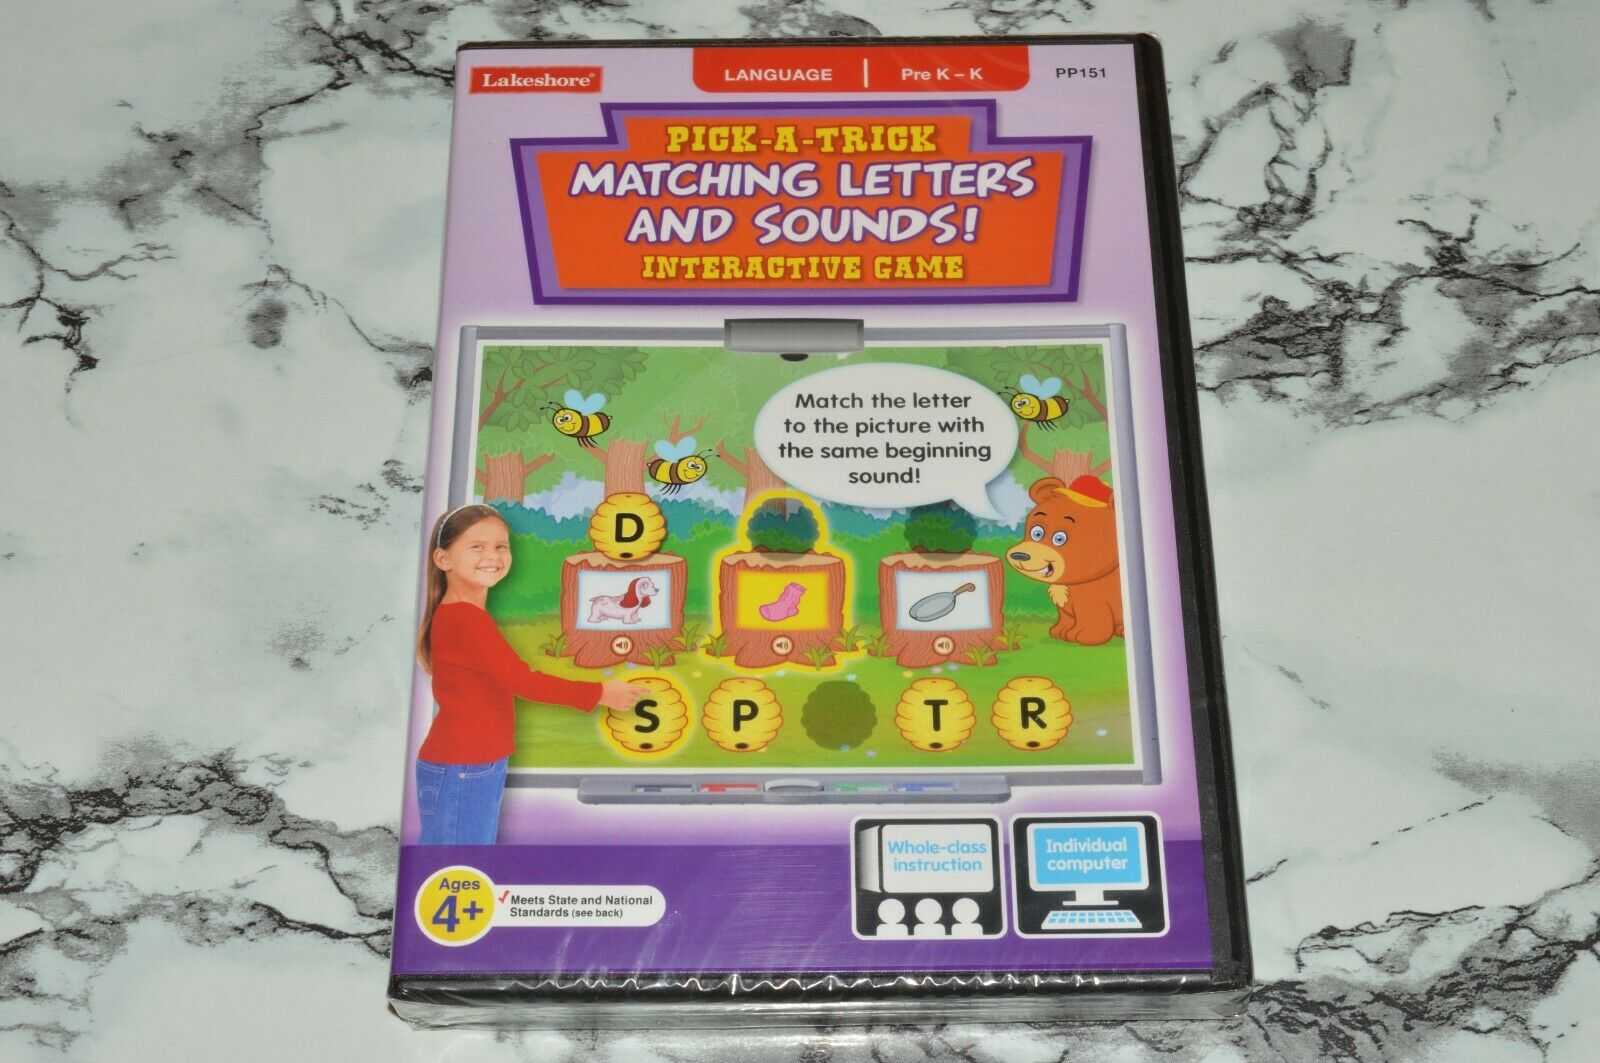 NEW - Lakeshore - Pick-A-Trick - Matching Letters And Sounds PC / MAC CD-ROM  - $12.68